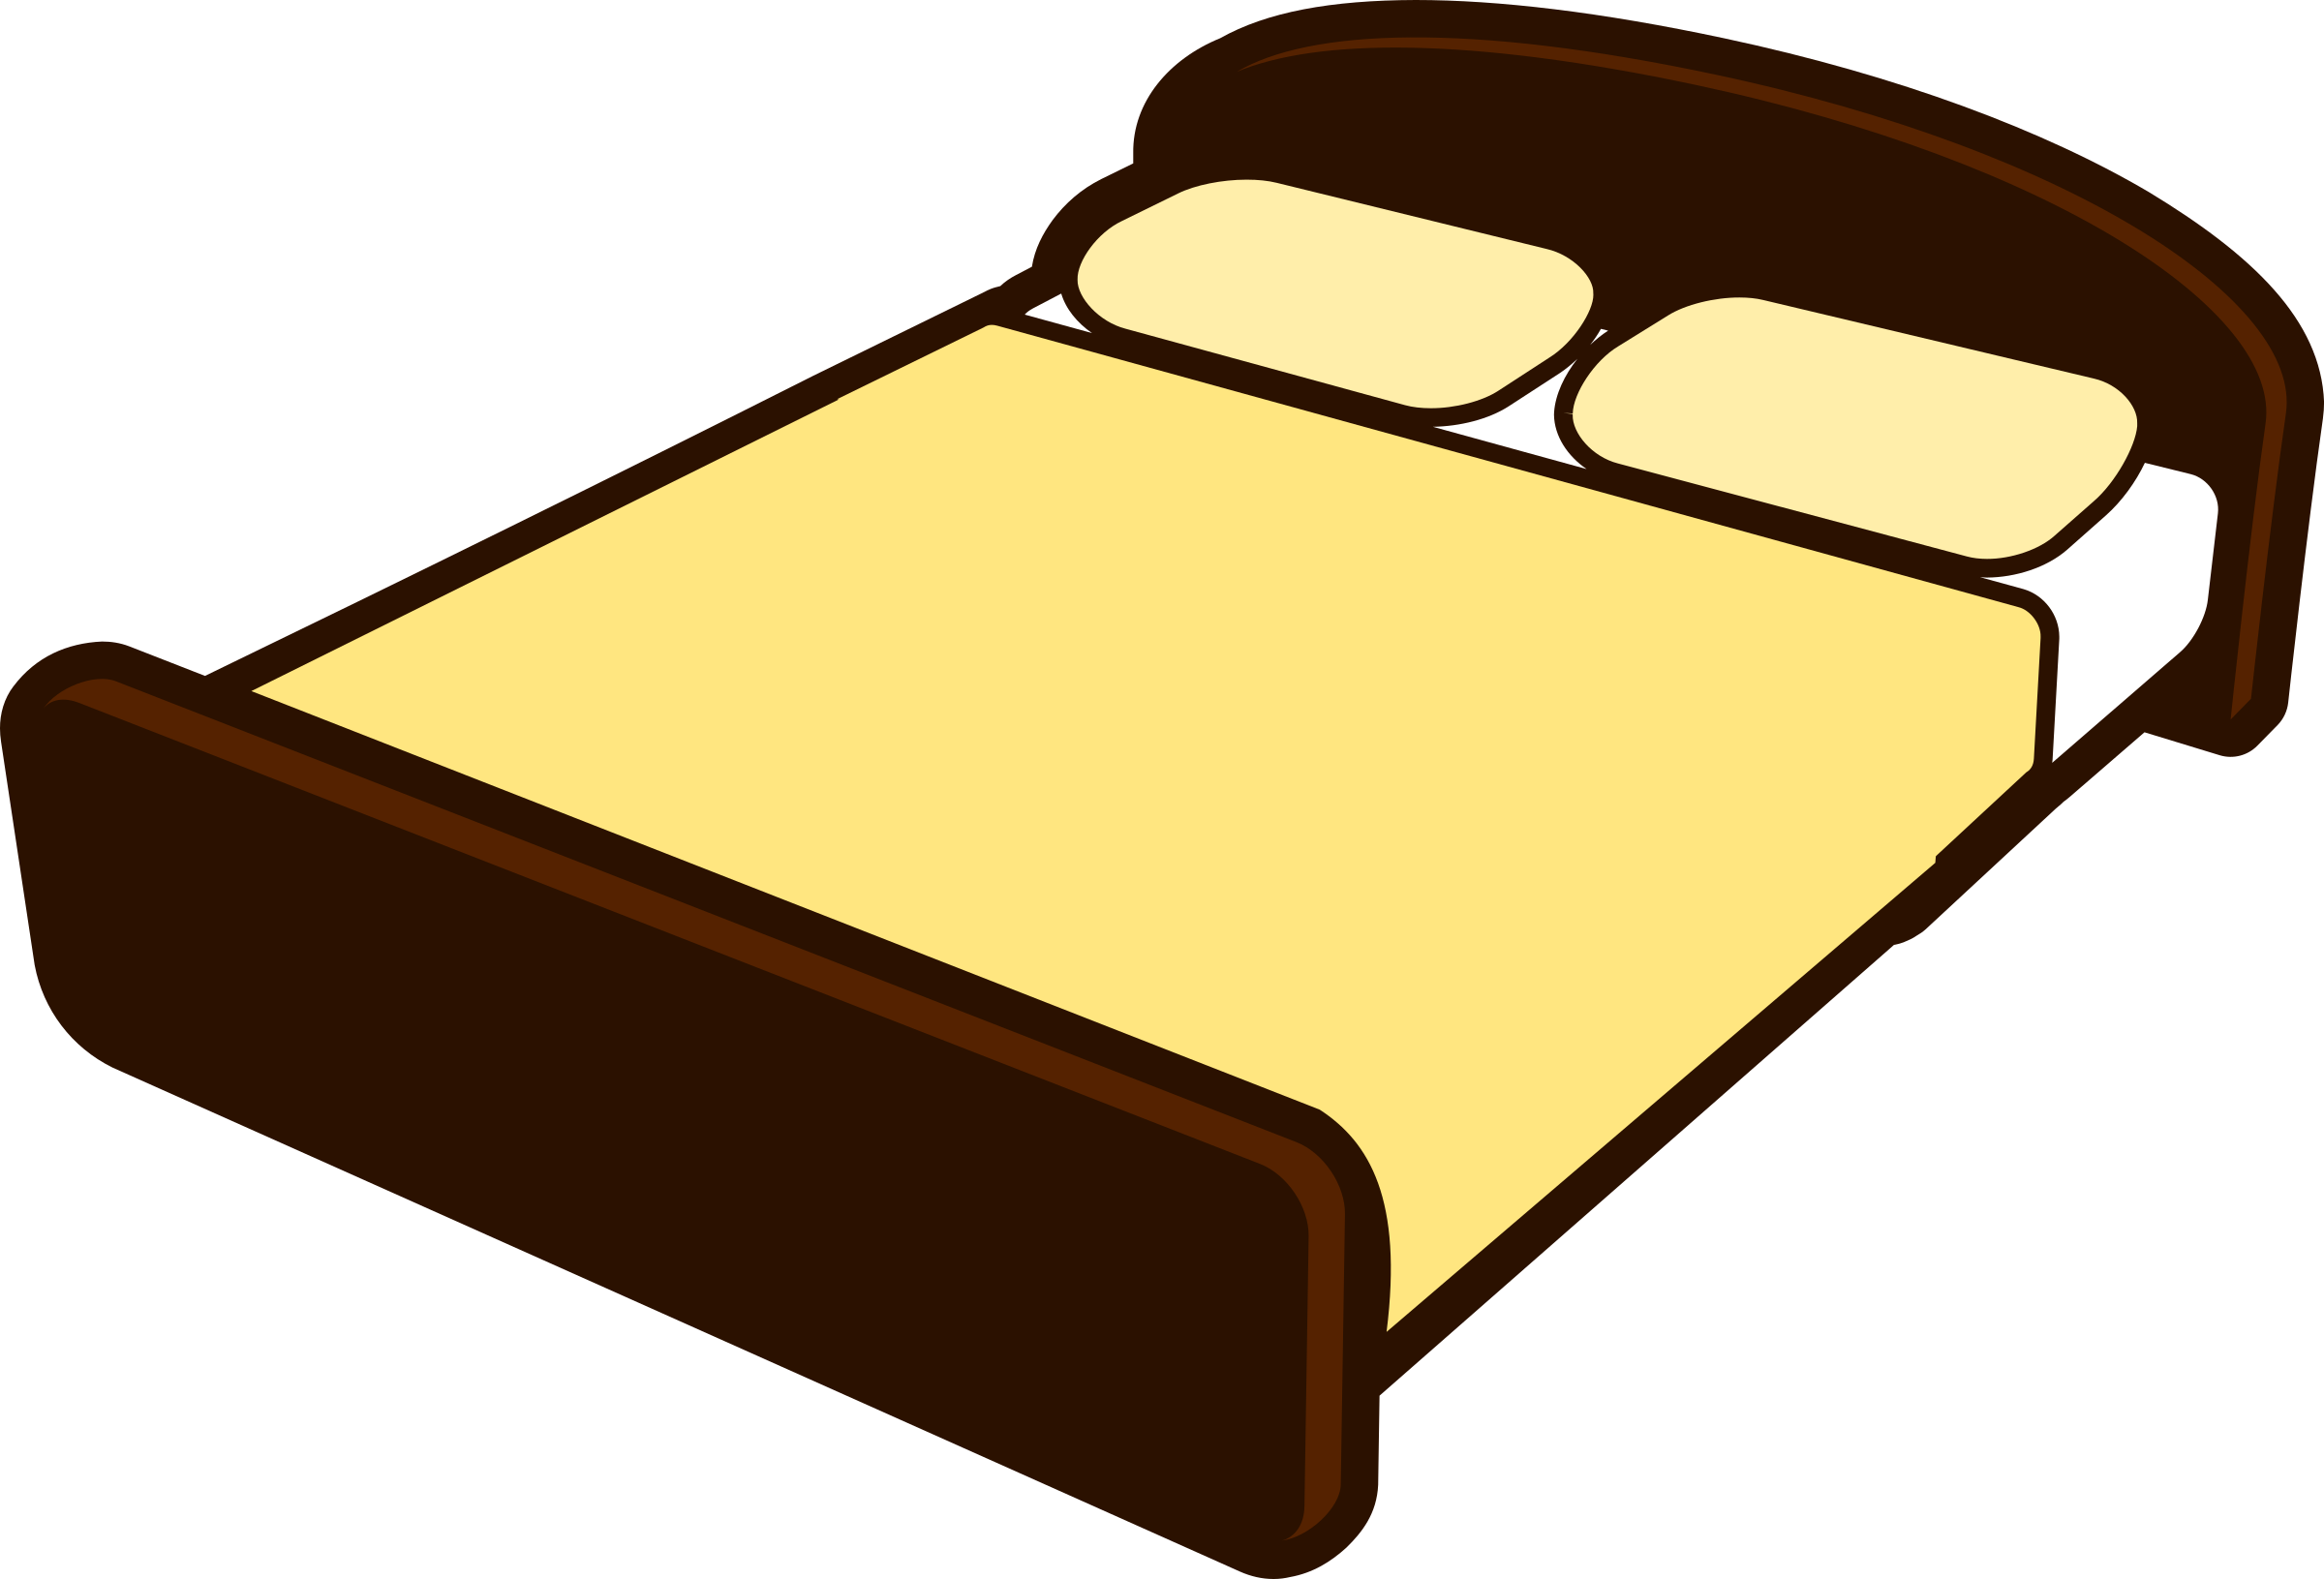 Clipart bed small bed. Tan big image png